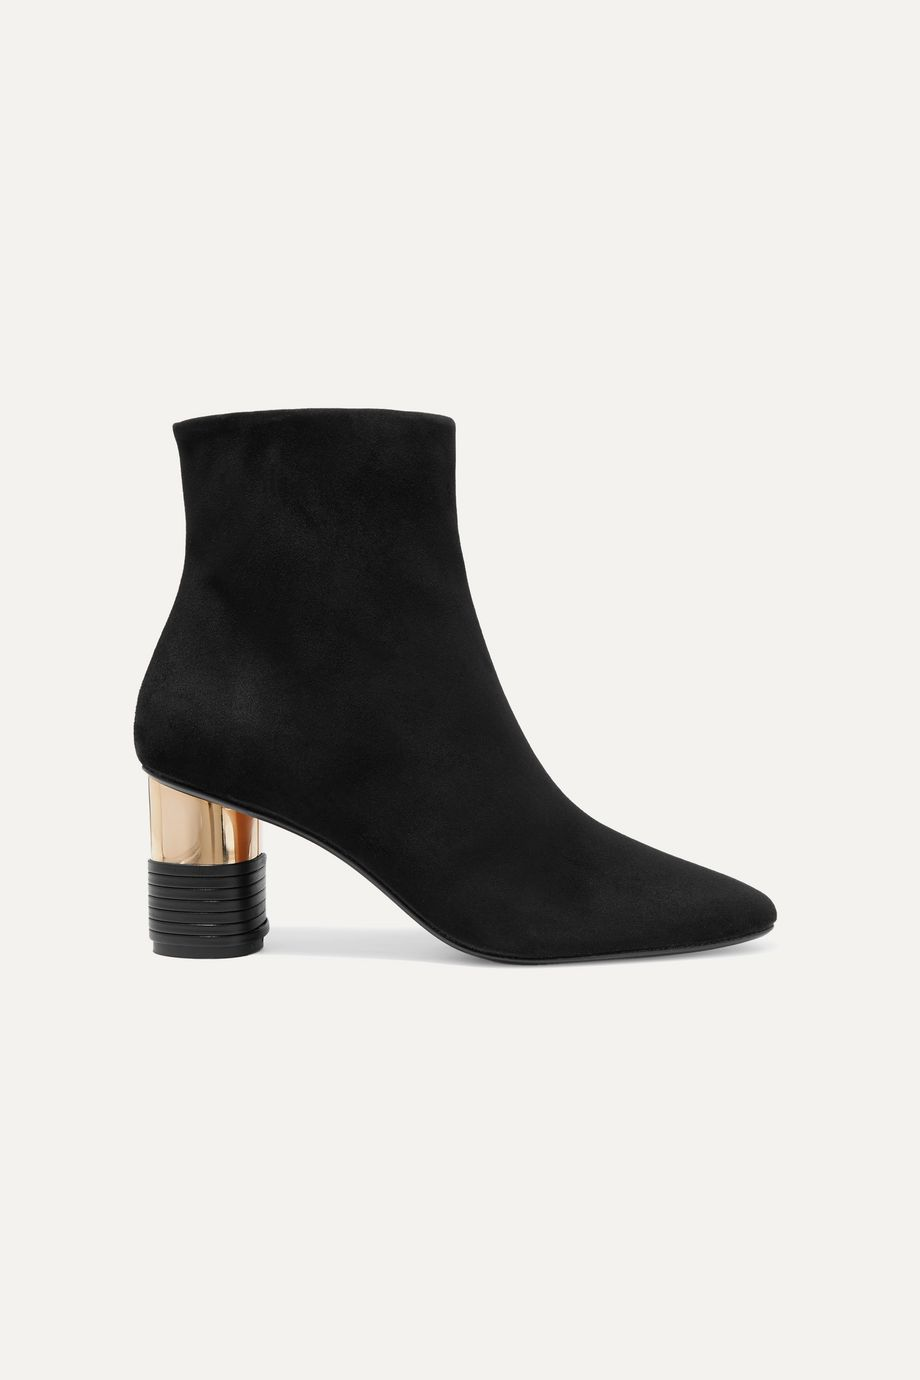 Souliers Martinez Asturias suede ankle boots